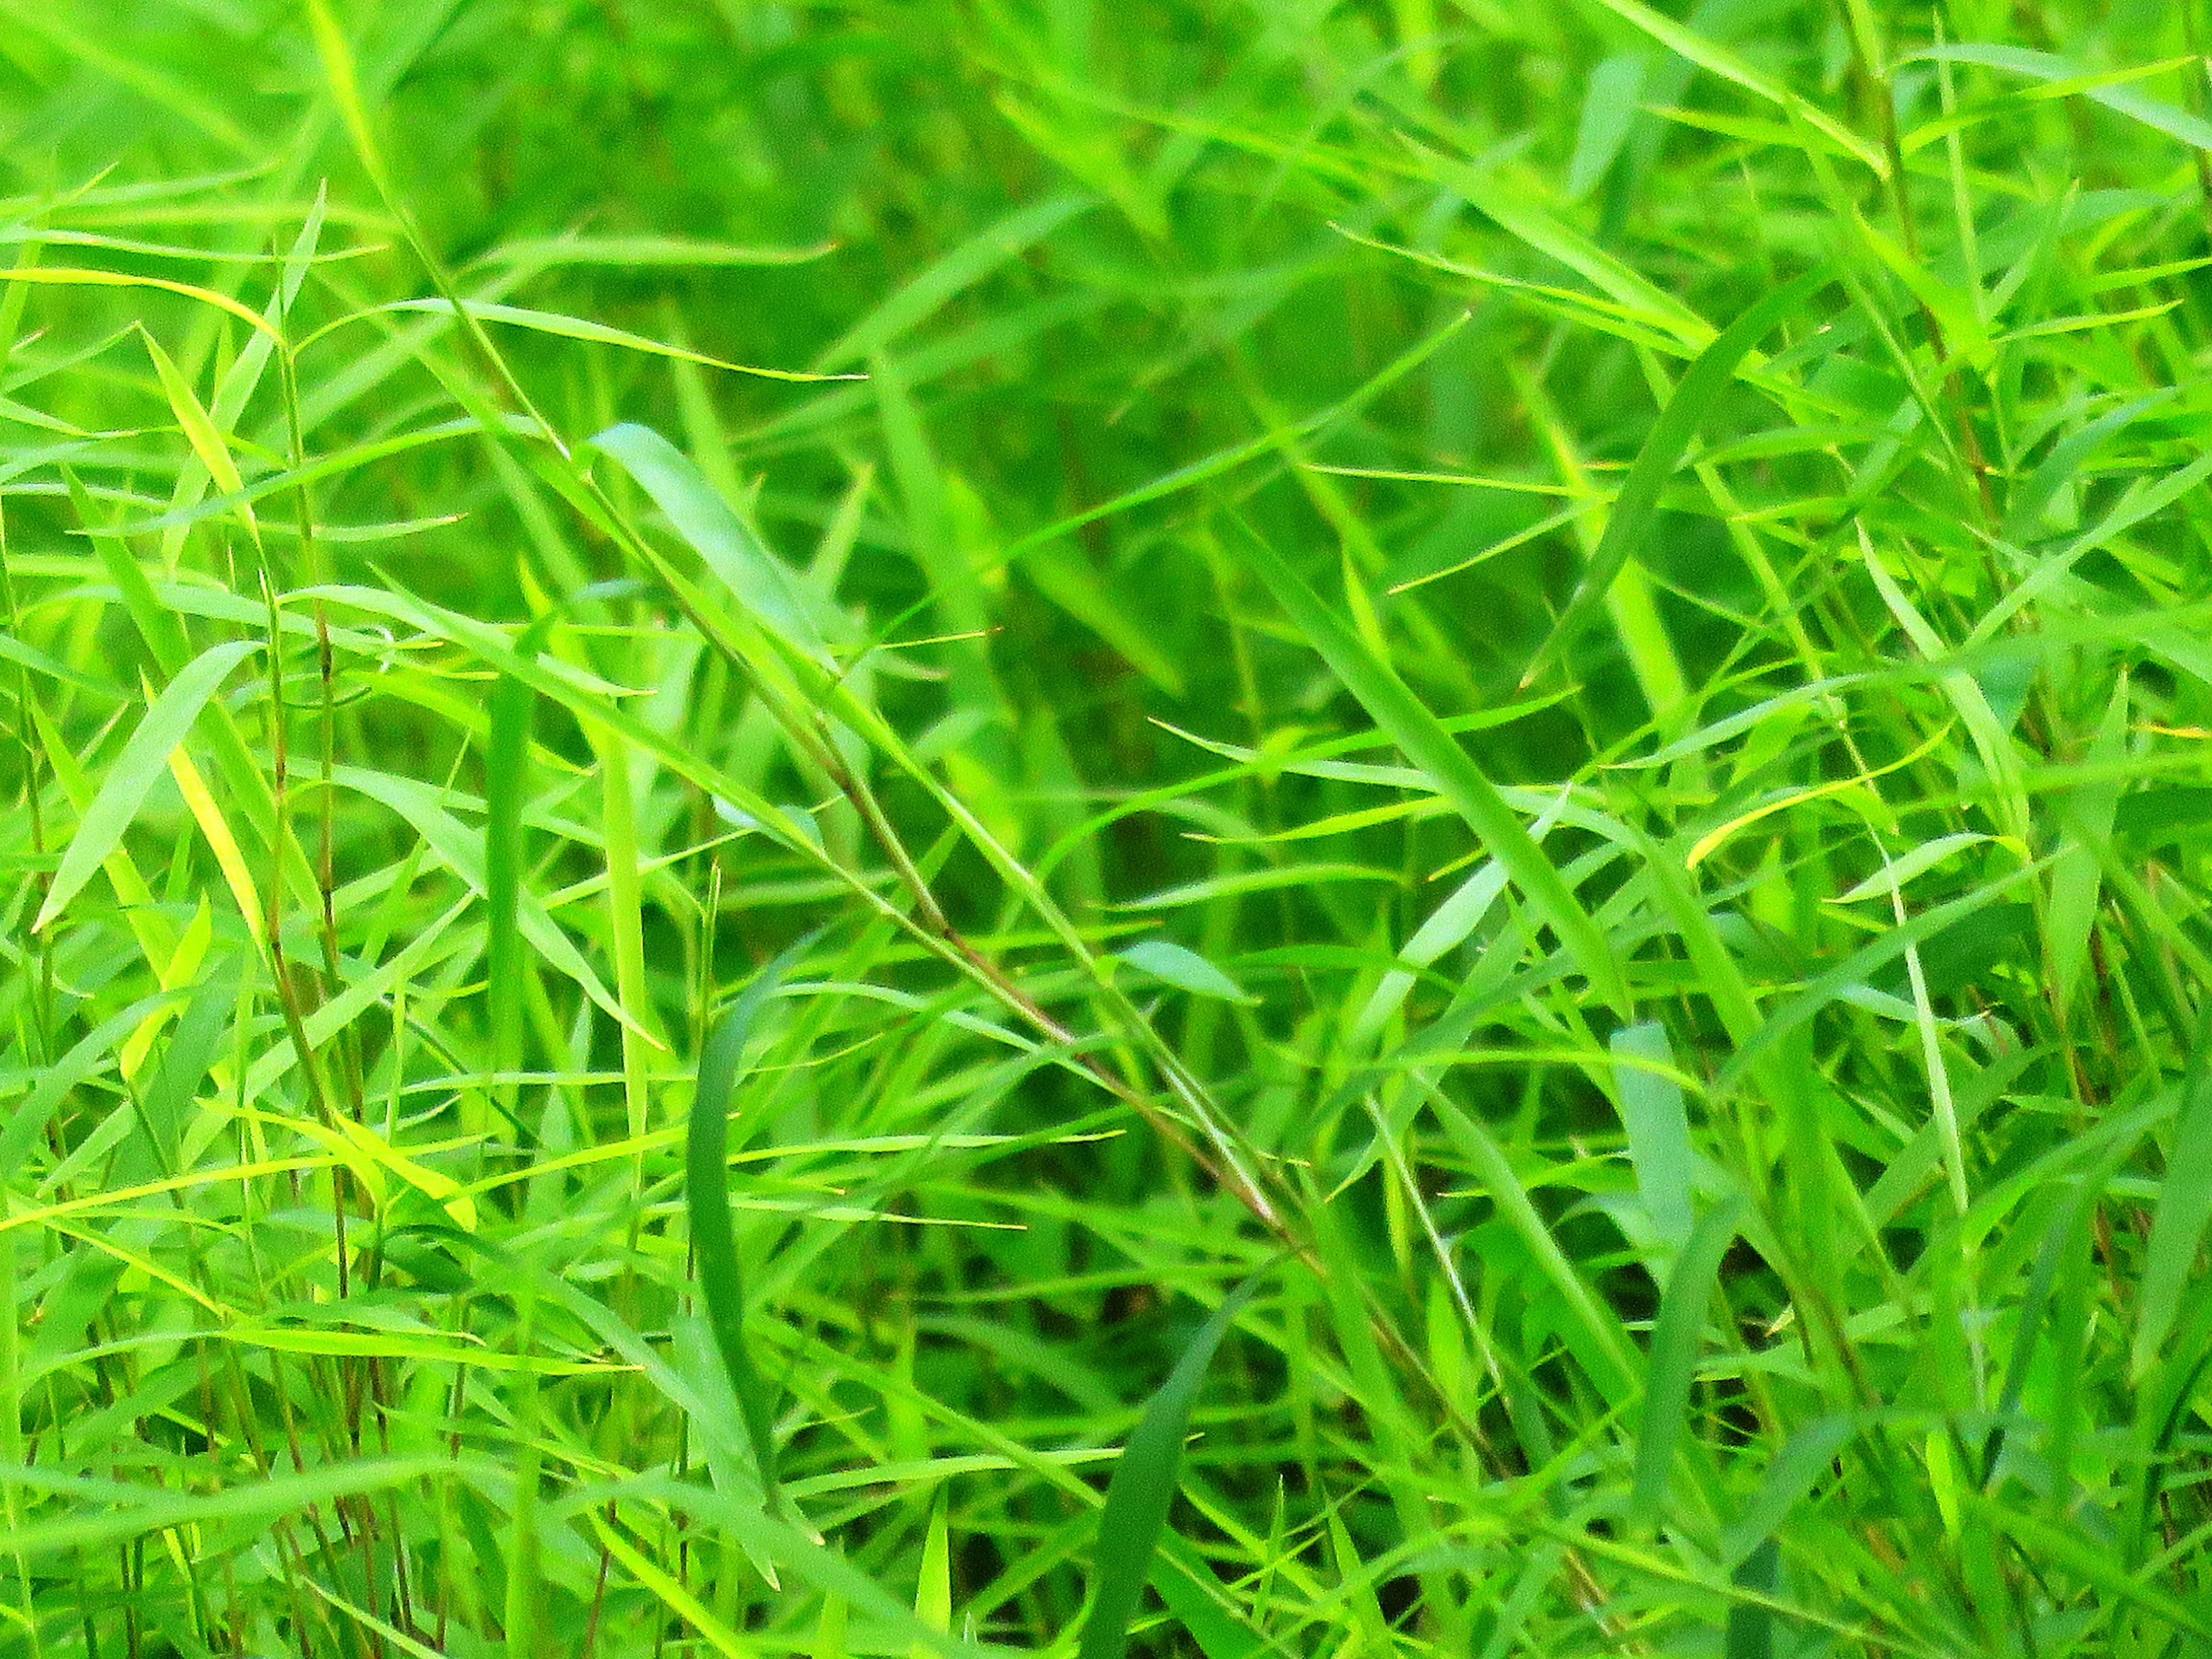 Free stock photo of grass, lawn, green, environment